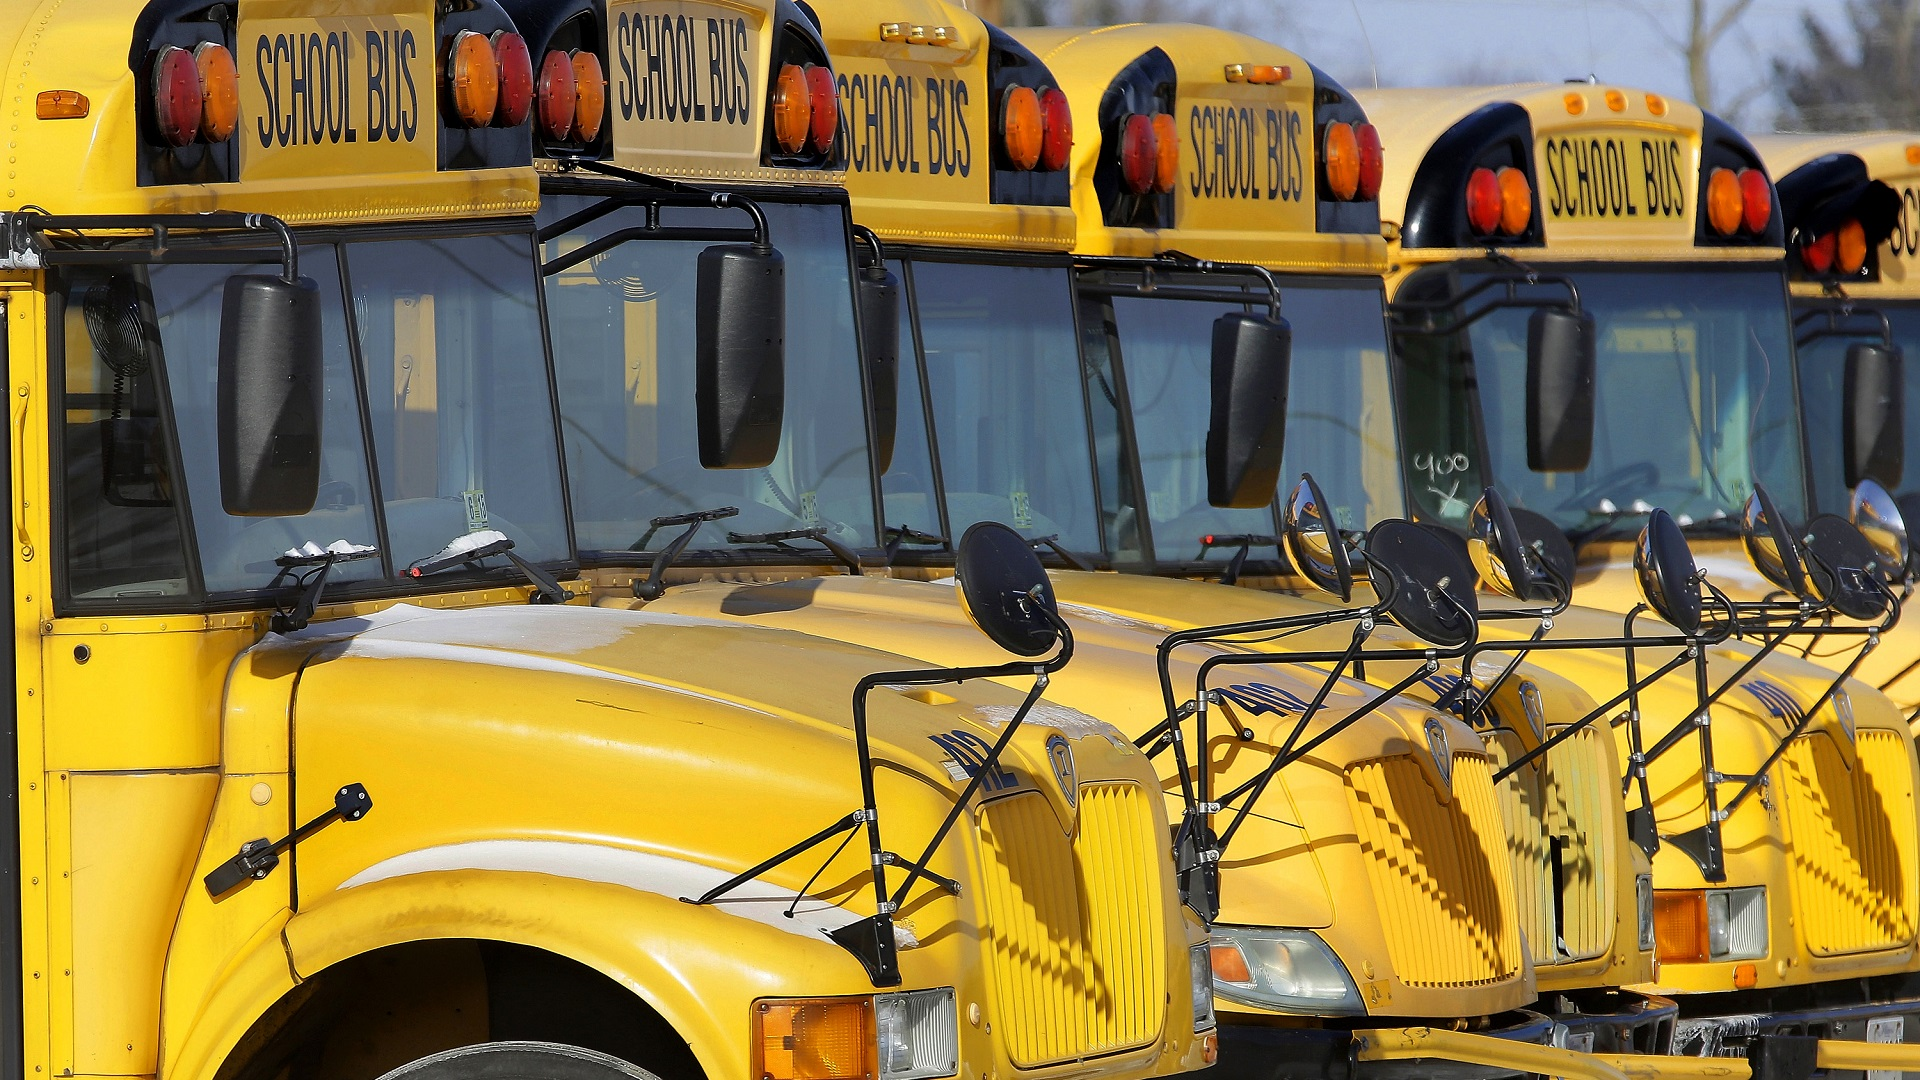 Pinellas school board approves changes to start times